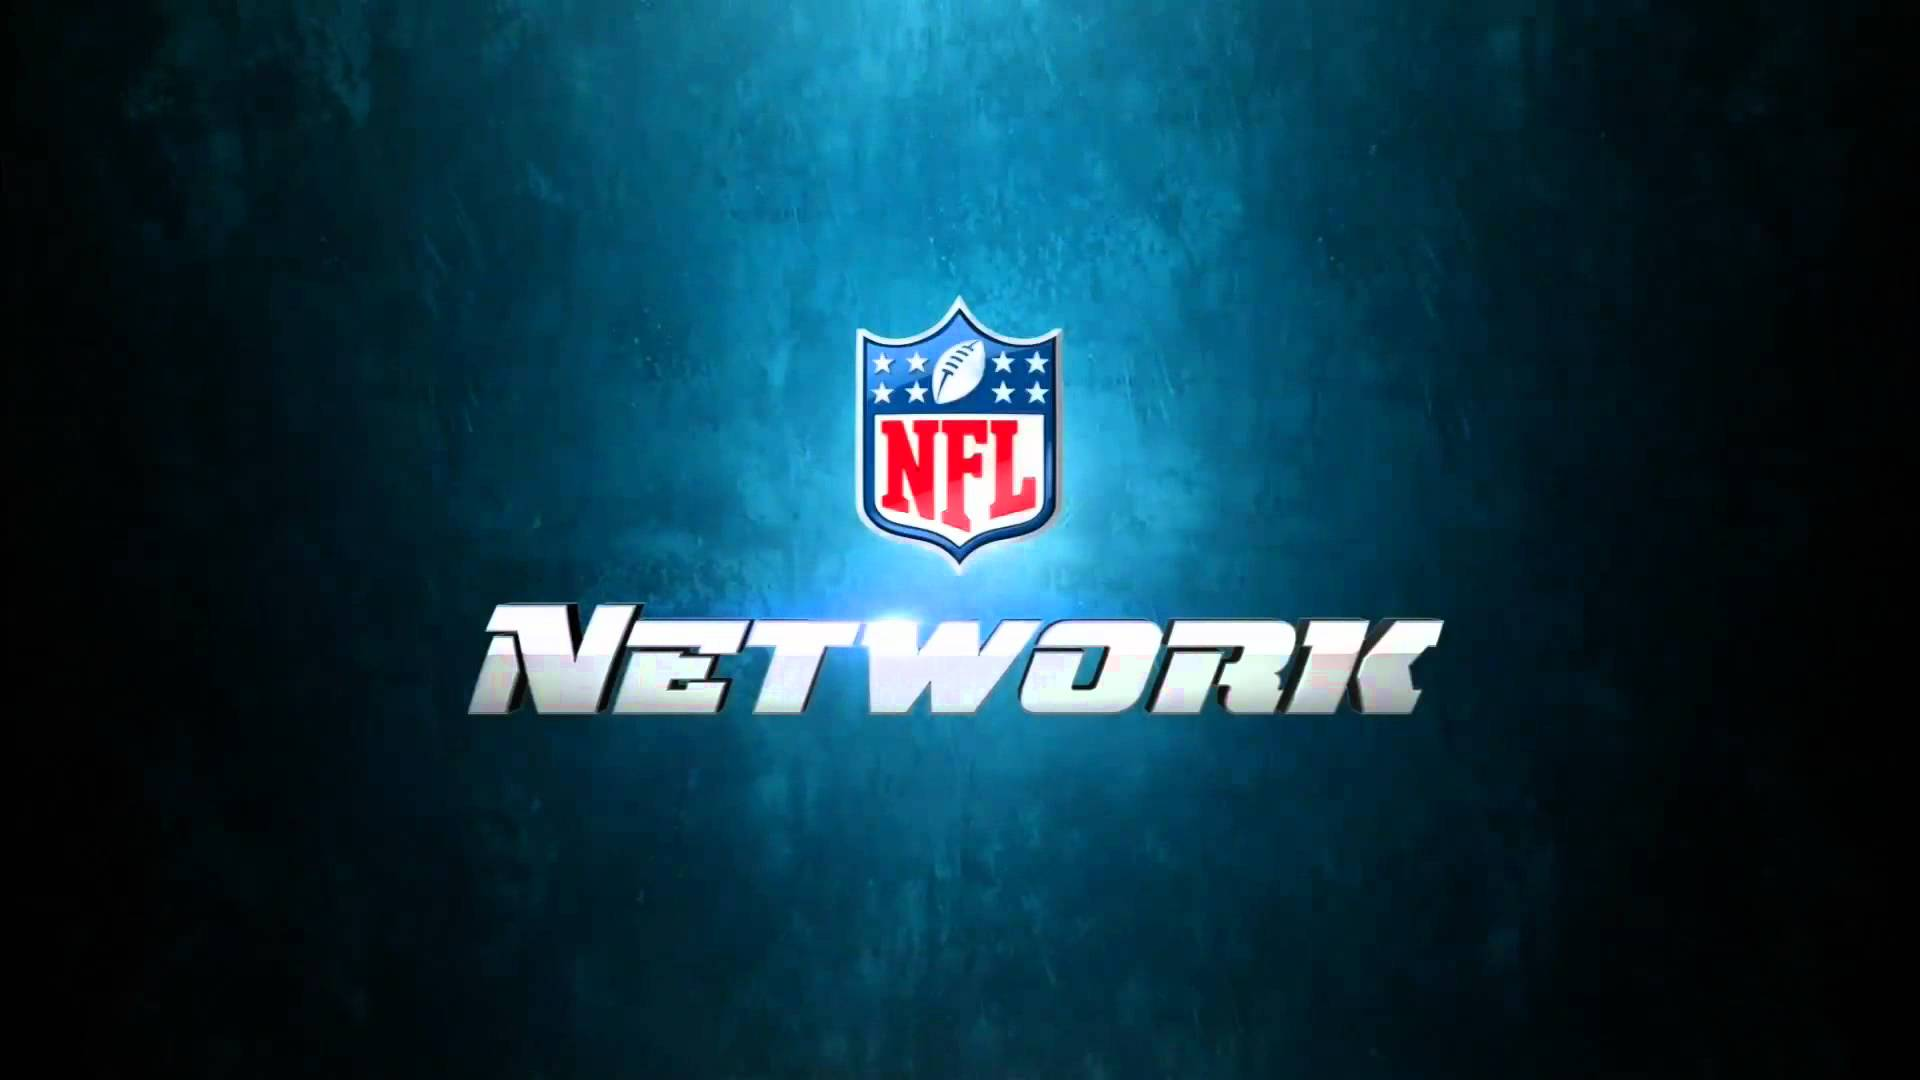 NFL Network 24/7 Live Stream